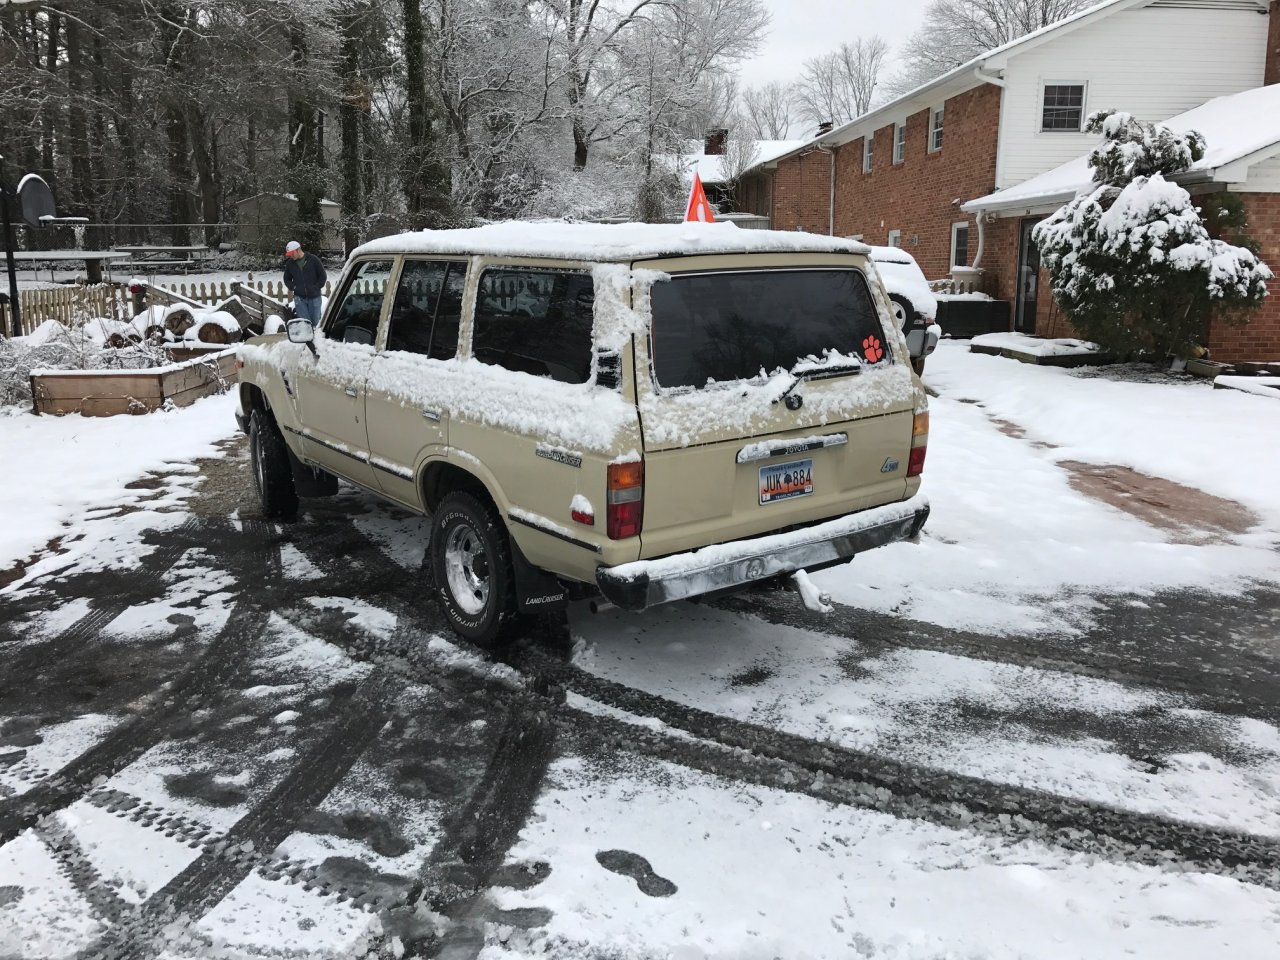 60 in snow rear.JPG